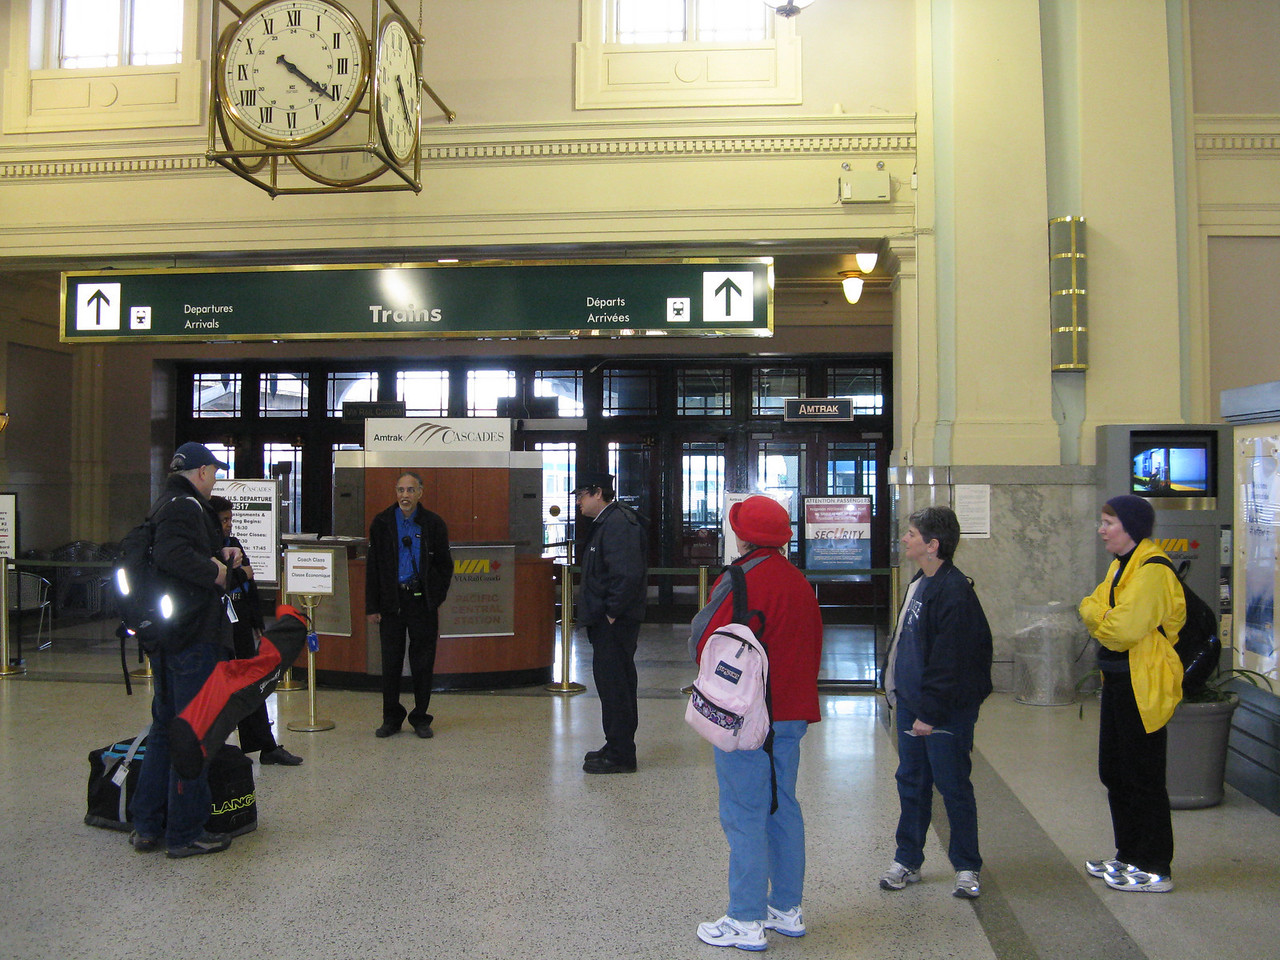 Inside the station, it is 4:20 p.m. and we can board the train beginning at 4:30 p.m.